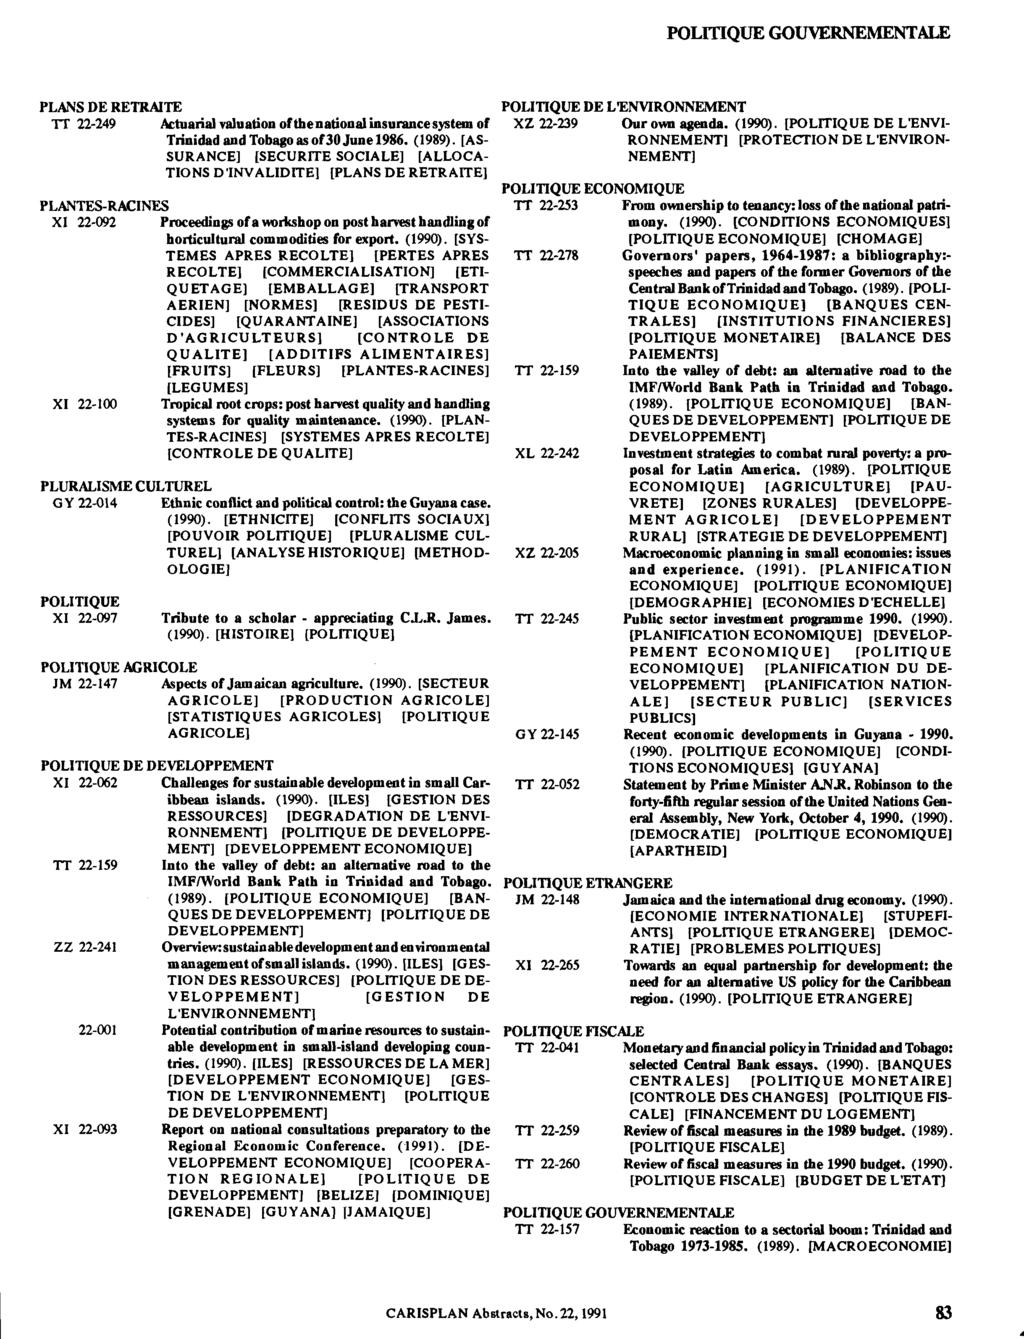 POLITIQUE GOUVERNEMENTALE PLANS DE RETRAITE TT 22-249 Actuarial valuation of thenational insurance system of Trinidad and Tobago as of30 June 1986. (1989).